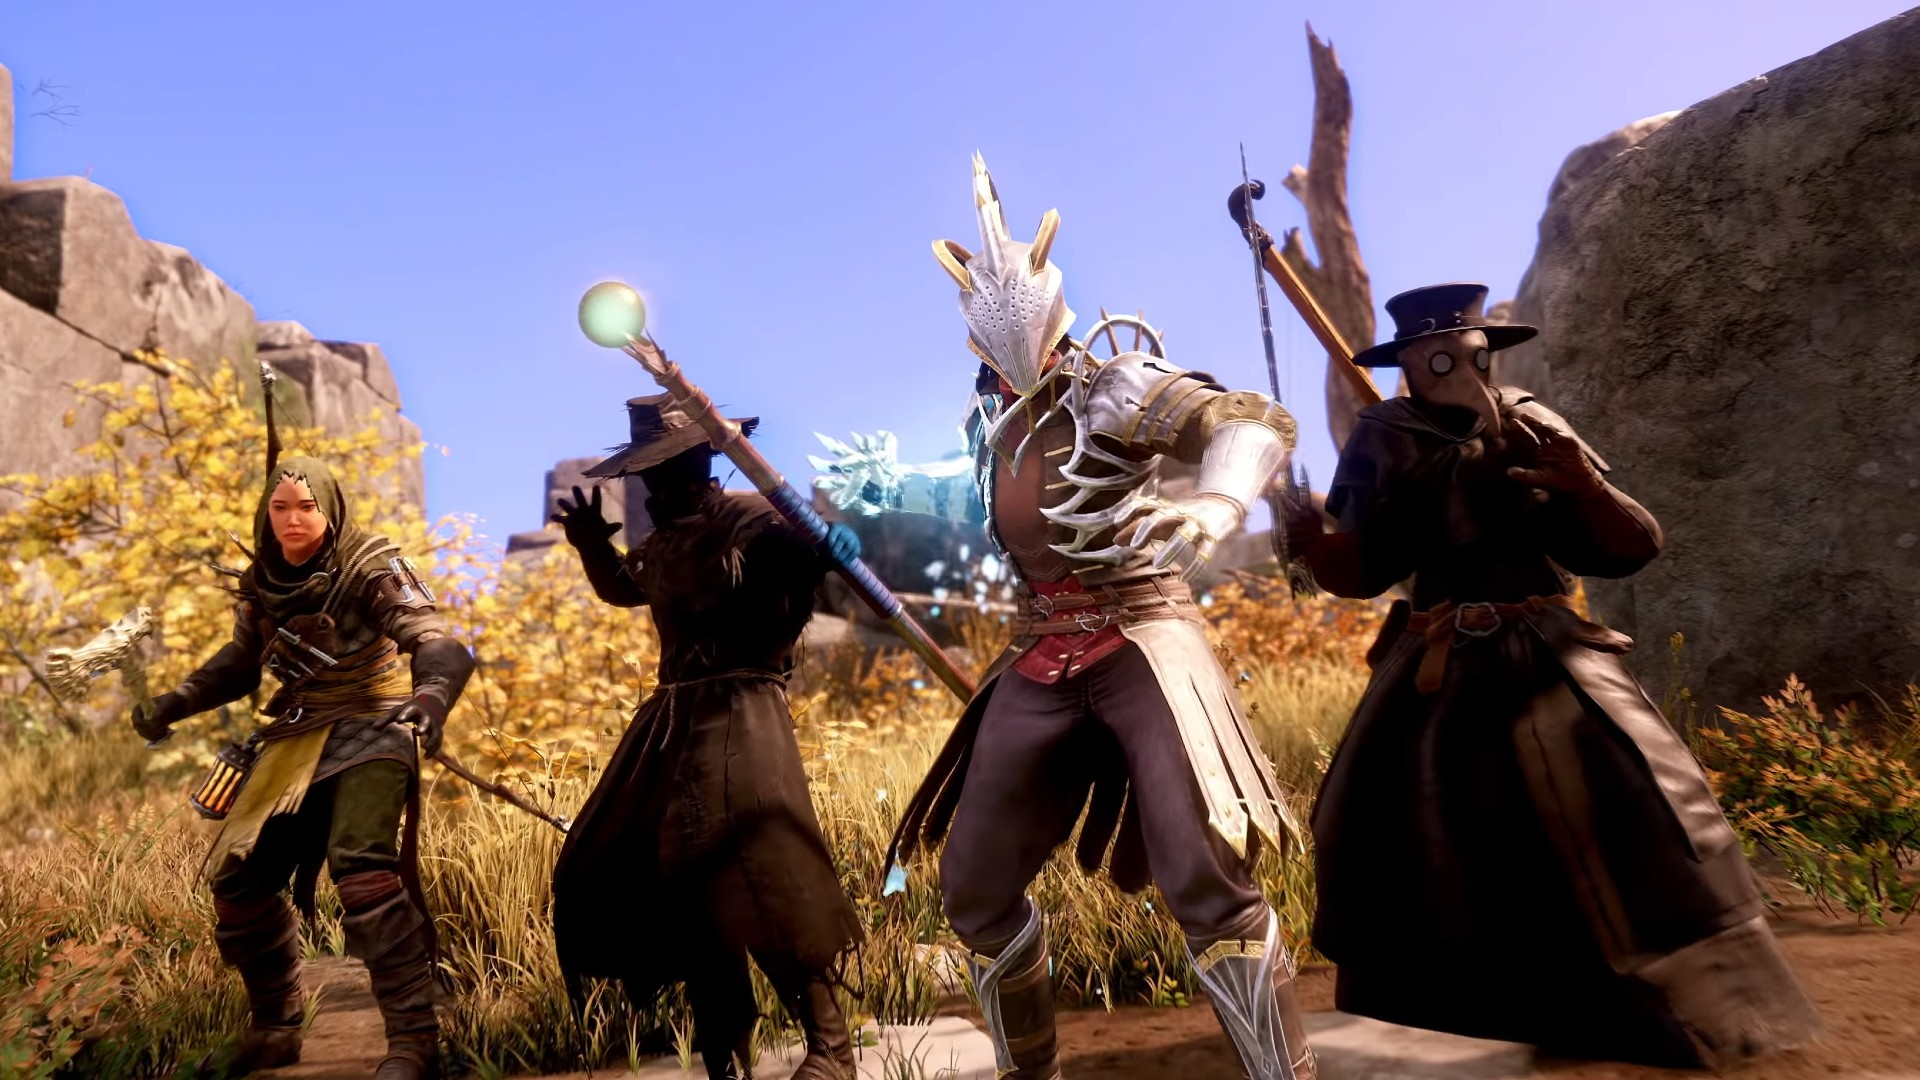 The best weapons in New World for PvP and PvE